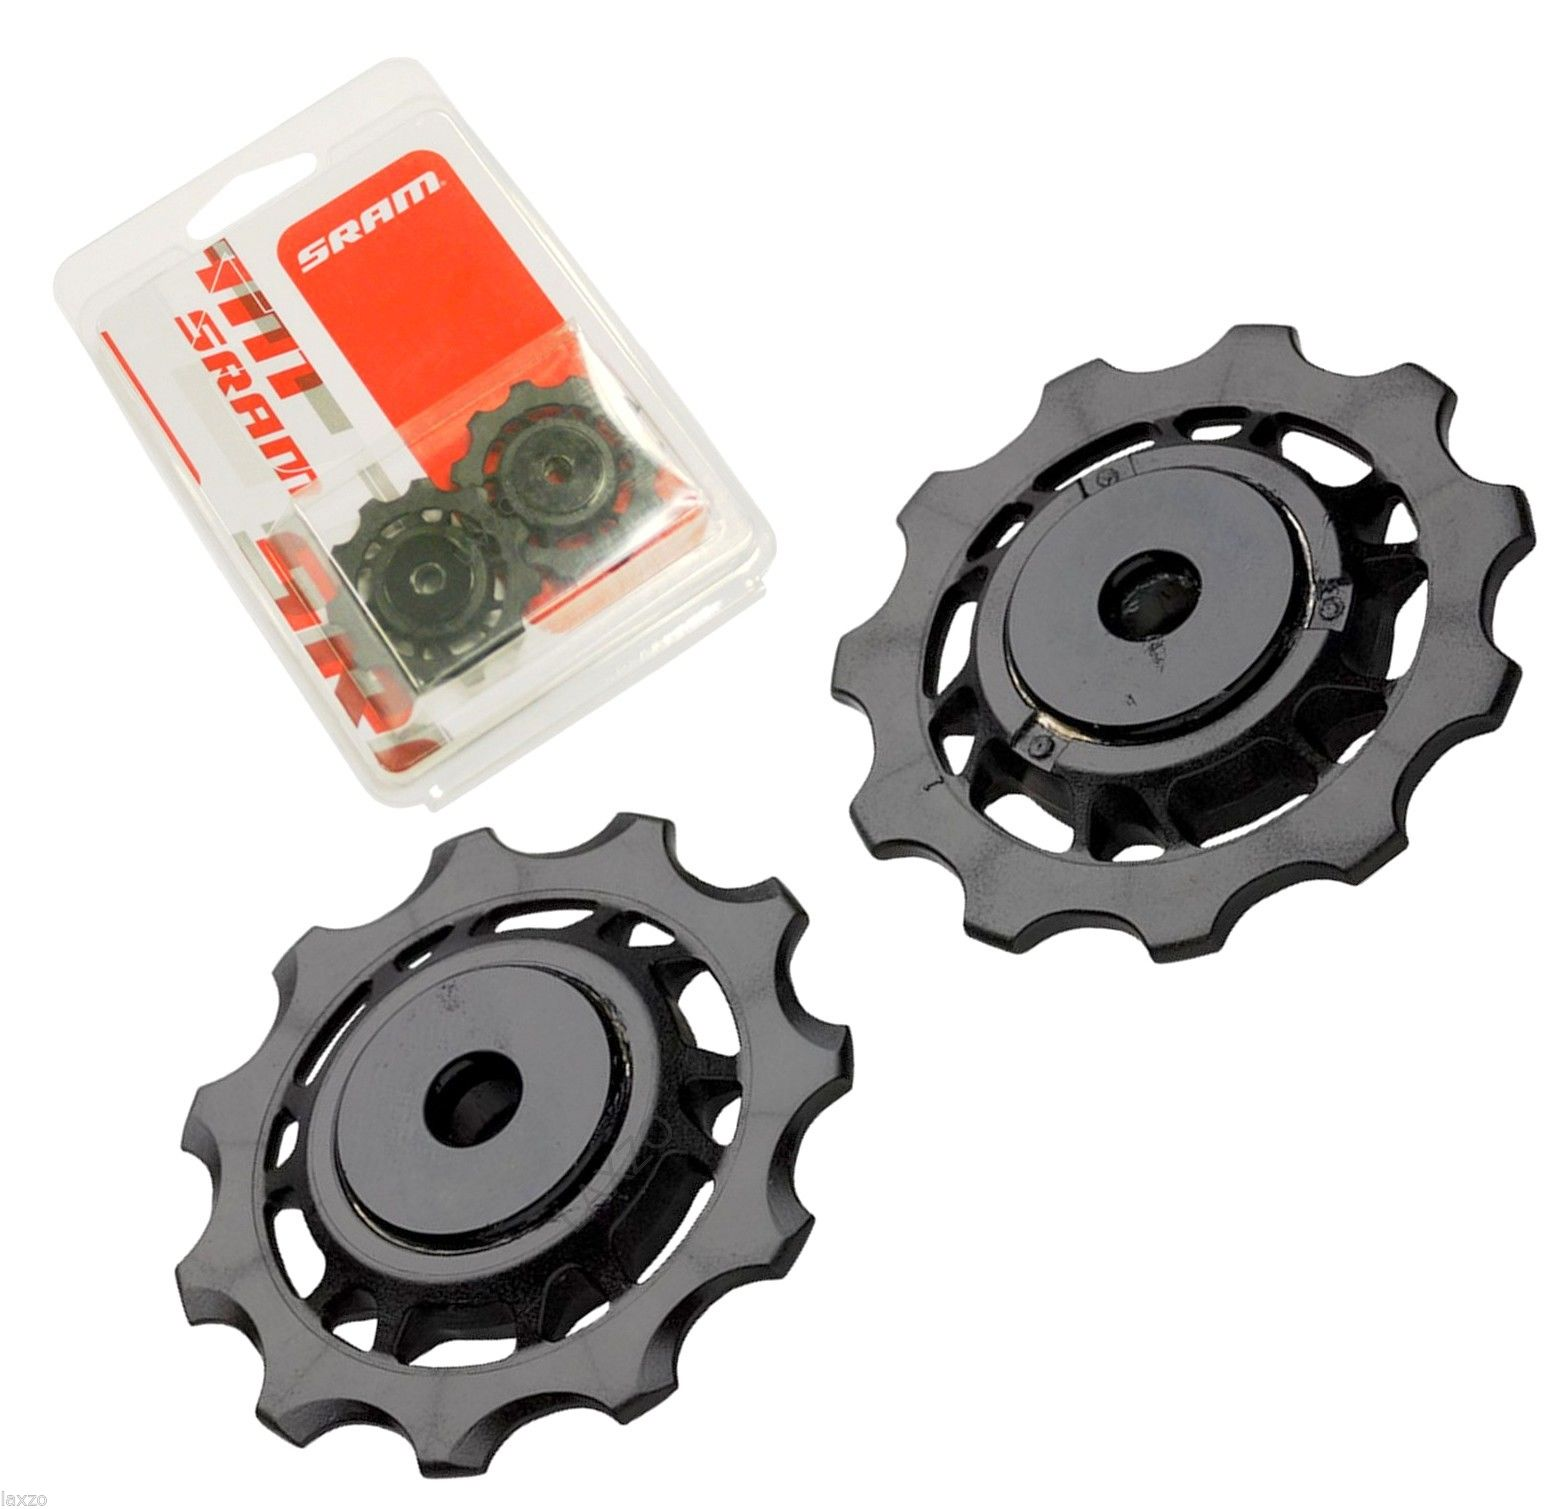 SRAM for X9 & X7 Pulleys Set